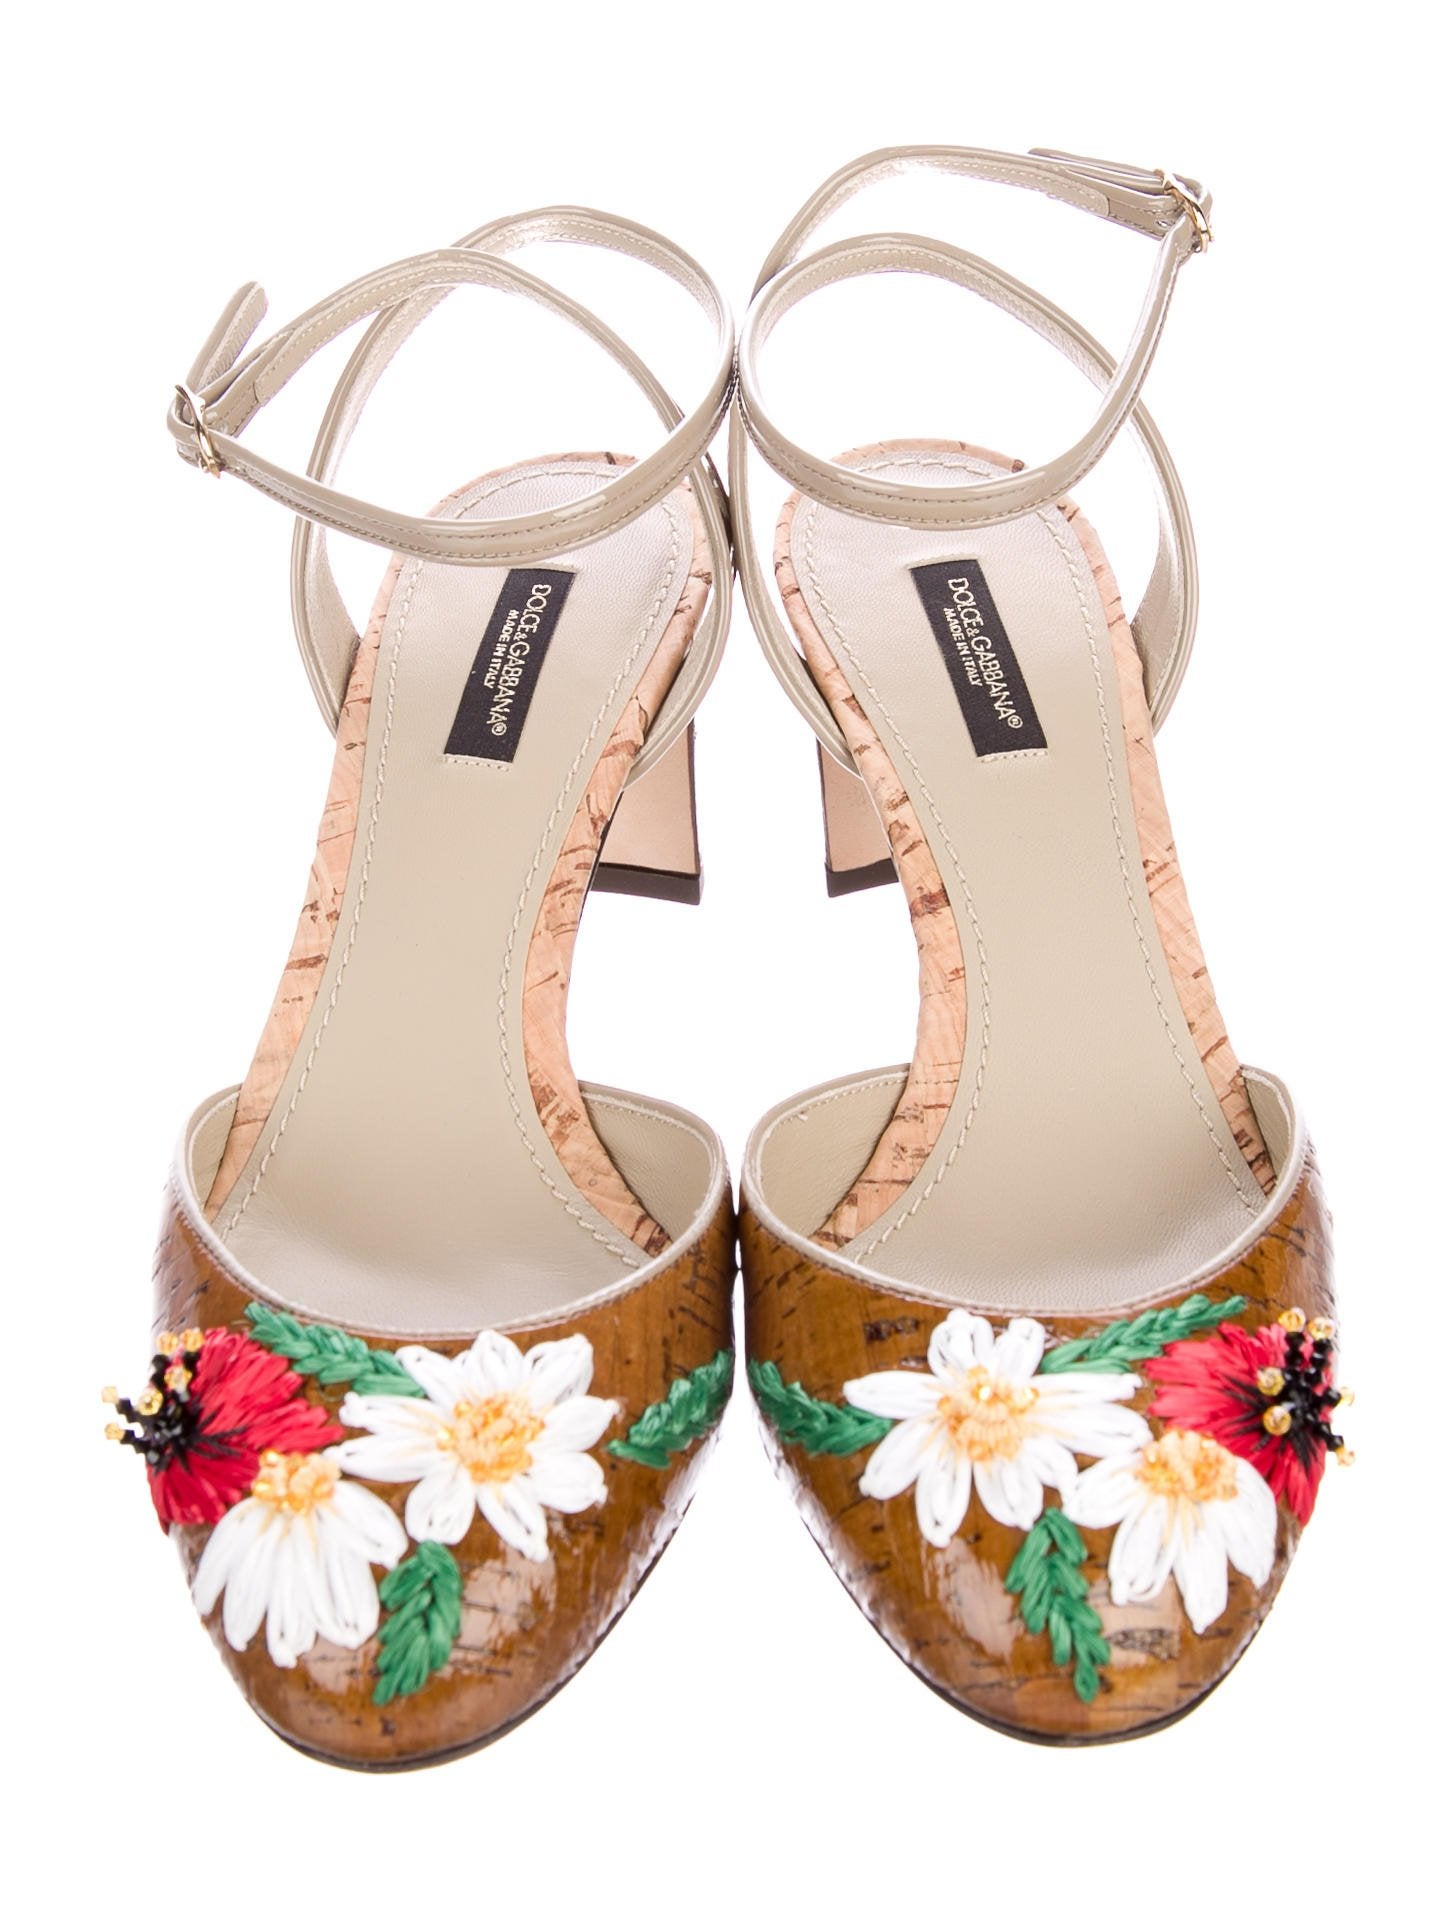 Dolce & Gabbana Floral Cork Pumps w/ Tags buy cheap find great 1FABFEyUxA